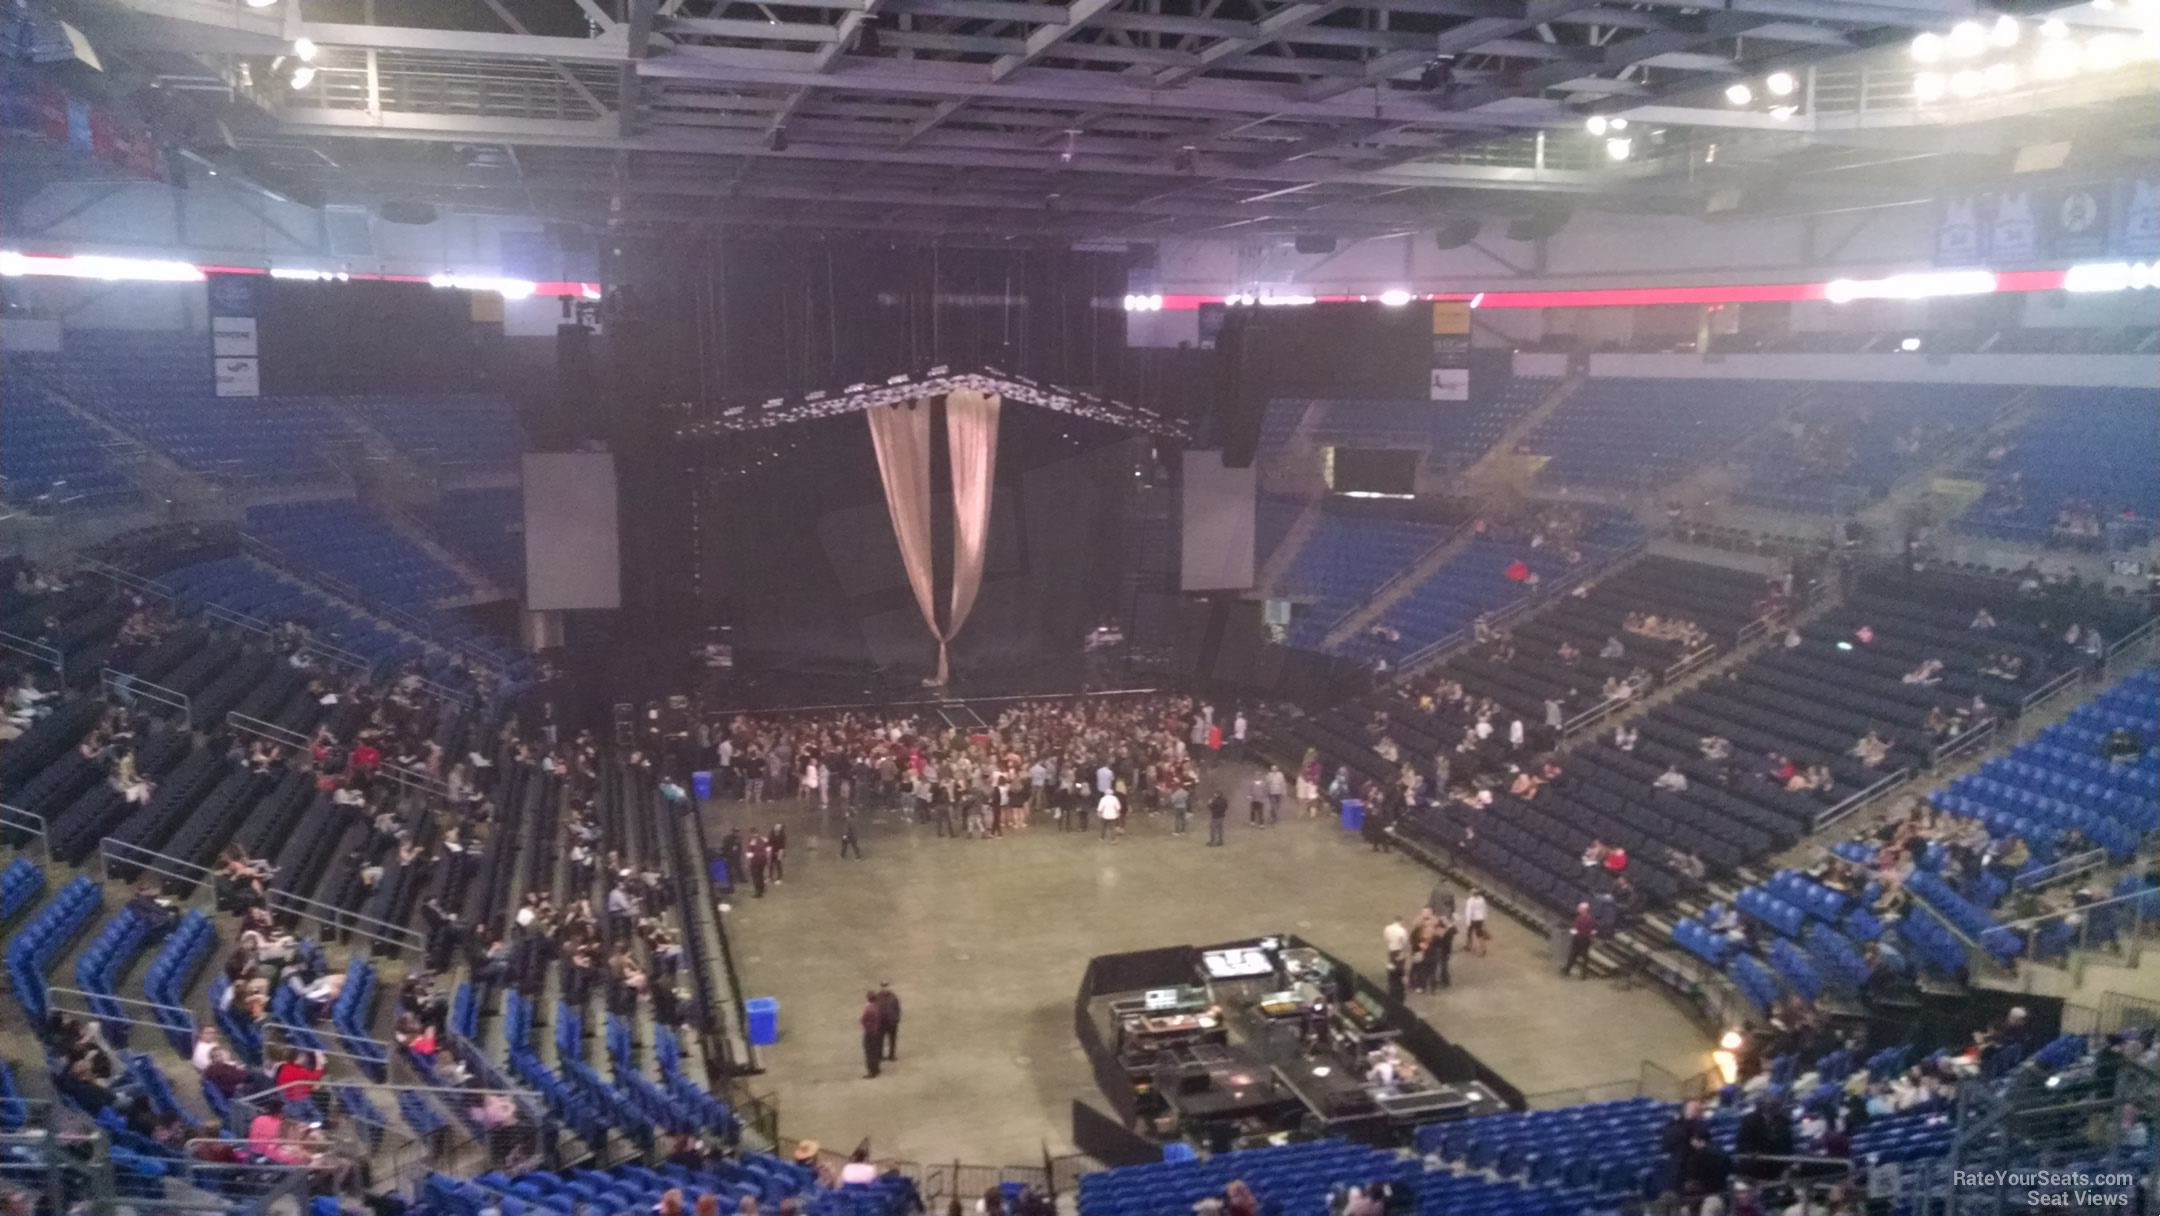 Section 210 seat view